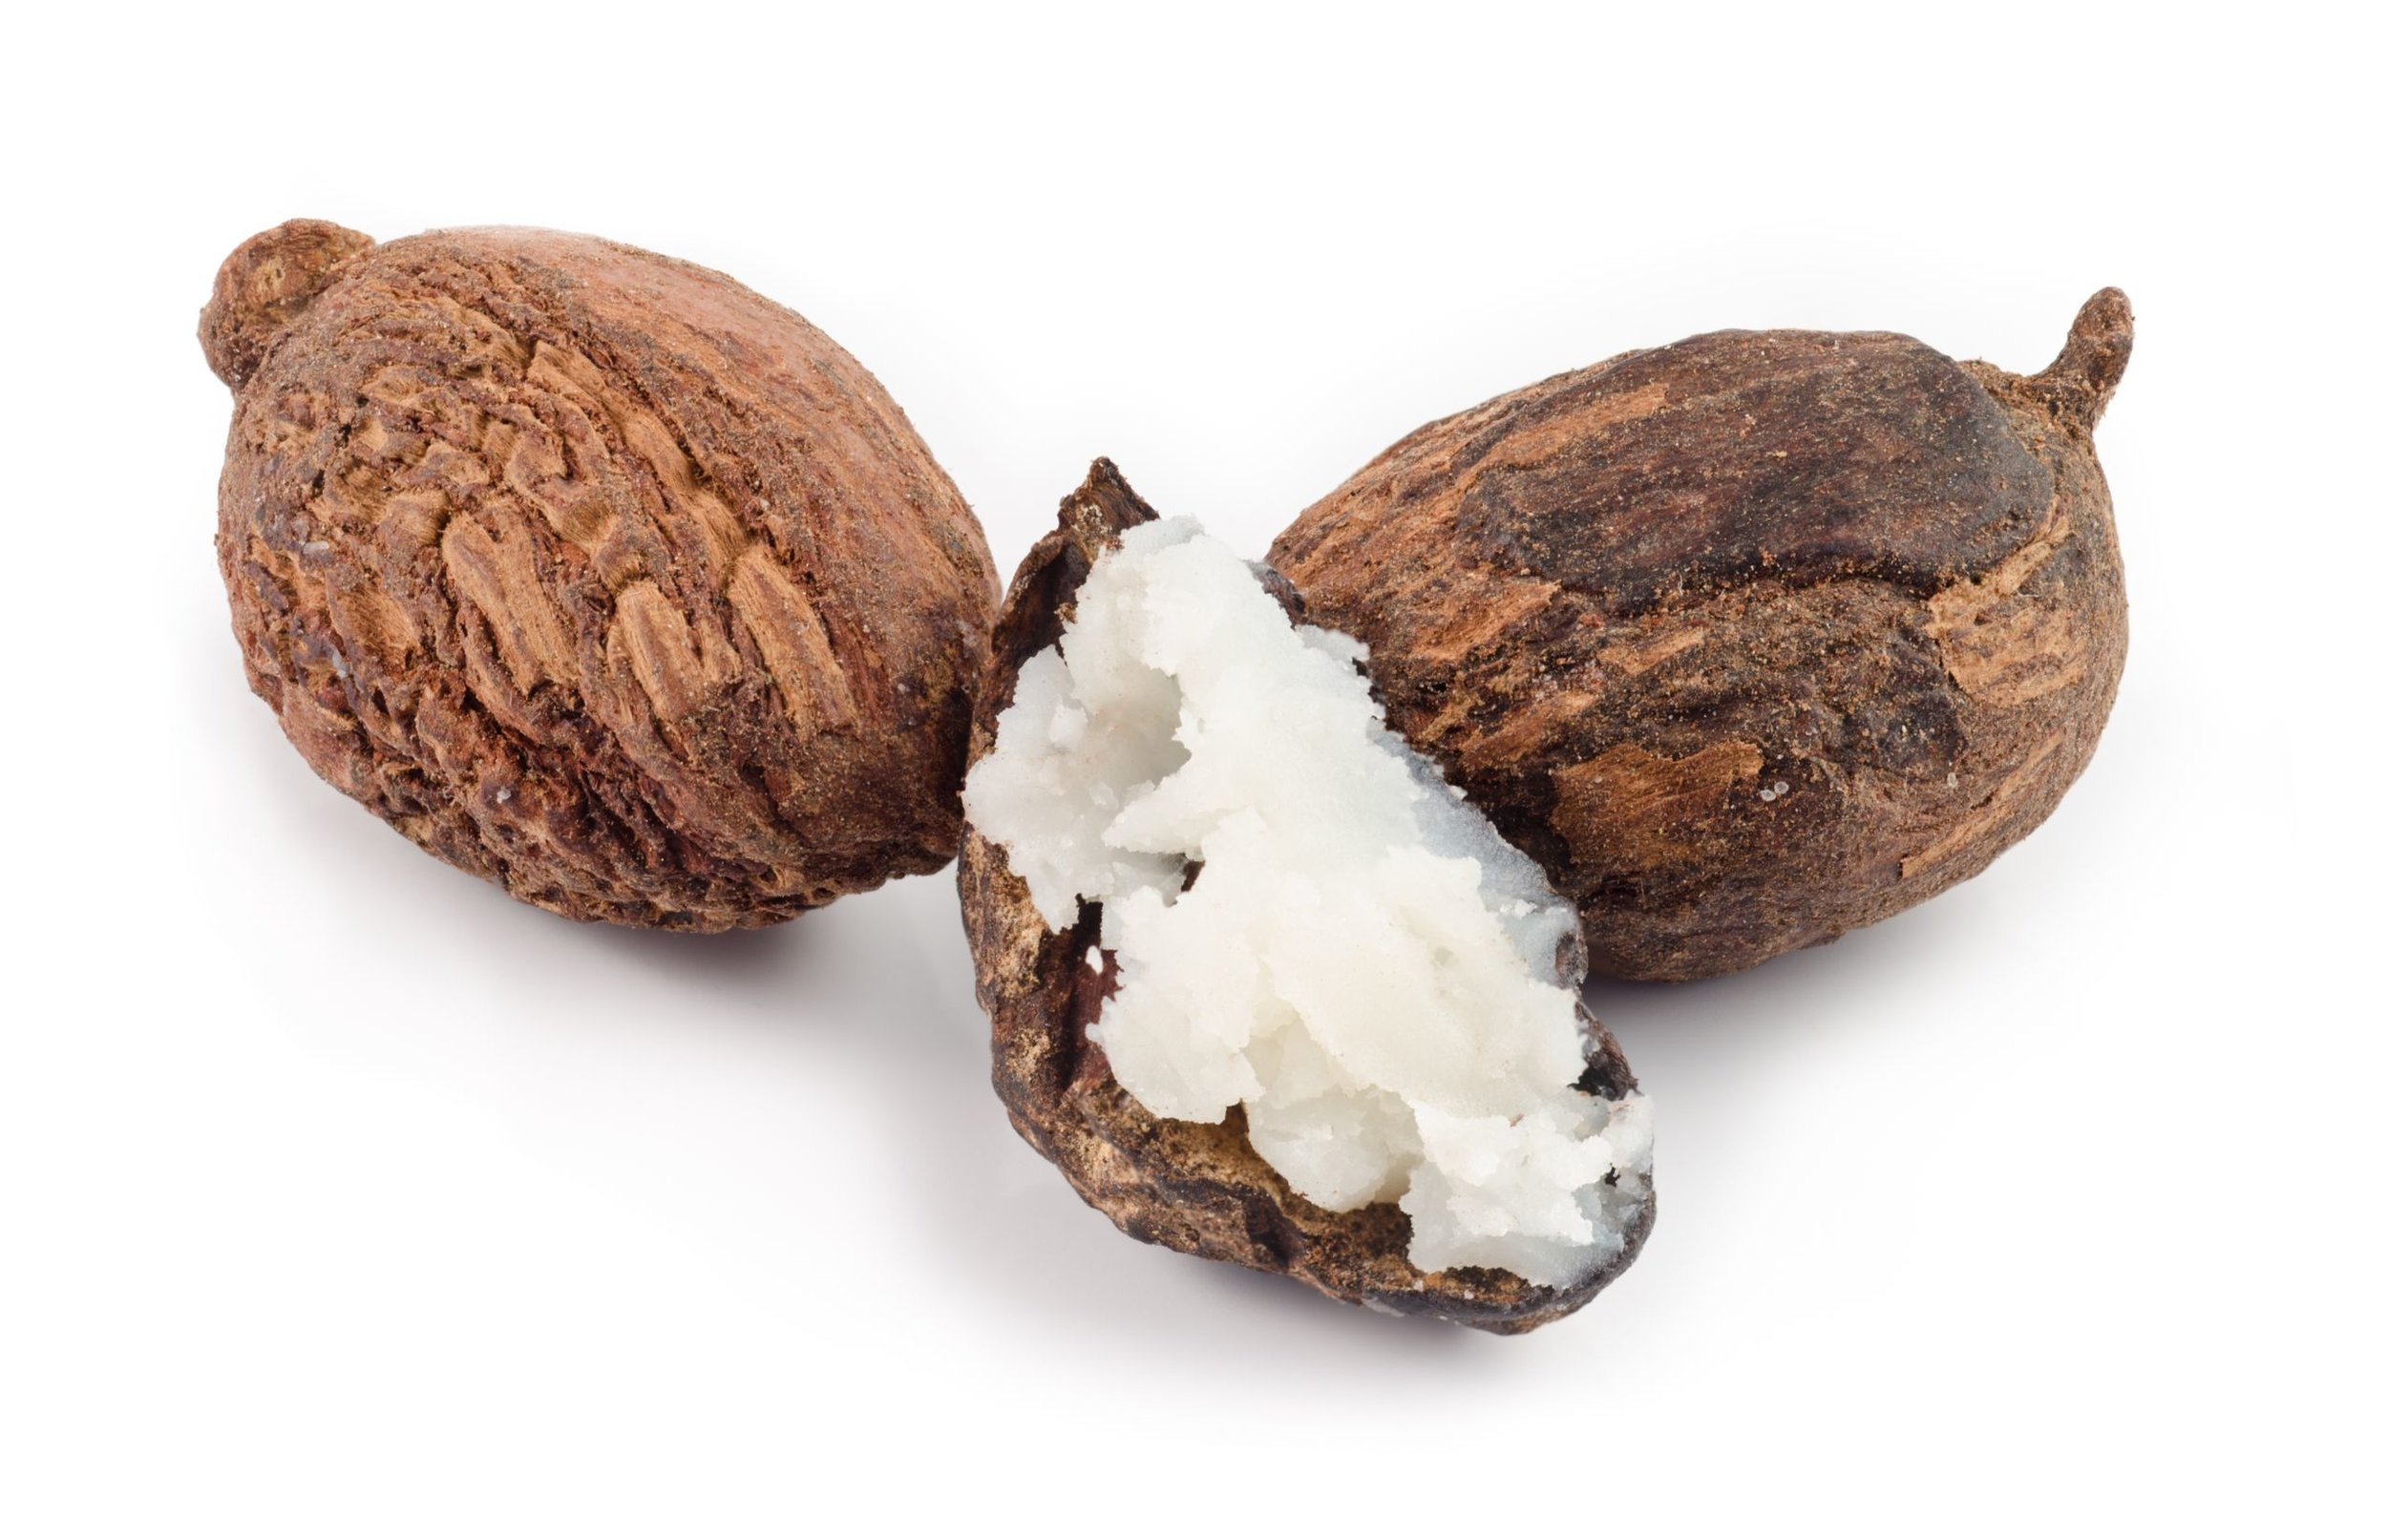 Organic Shea butter is a key ingredient in Cosmydor's cosmetics, creams, balms and soaps